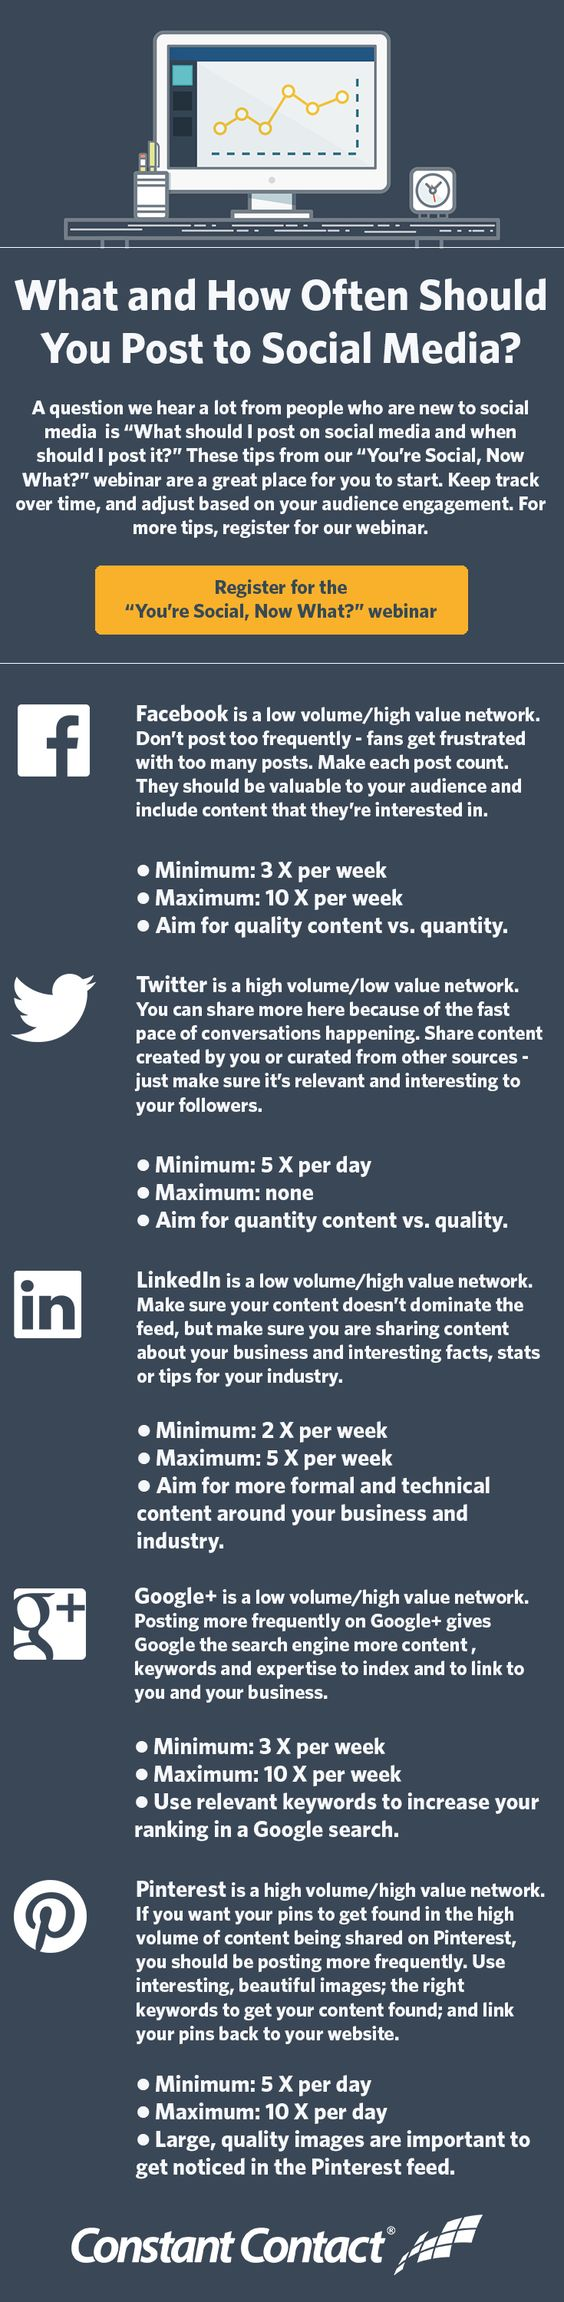 A #Guide to how often and what you should post to your different #Social #Media networks